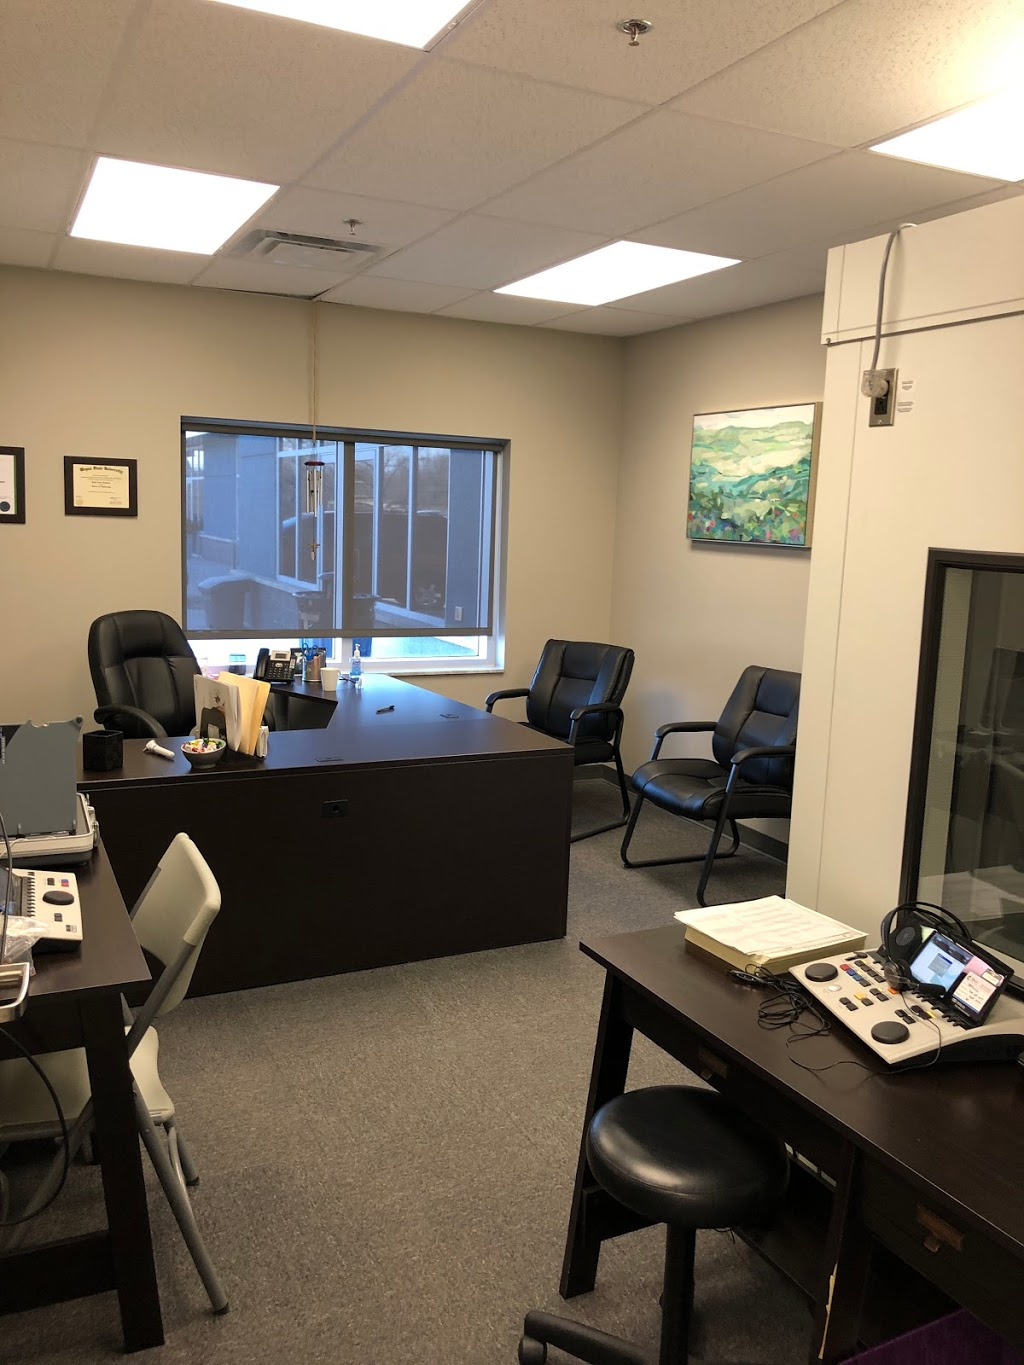 Helix Hearing Care | doctor | 1303 Essex County Rd 22 Suite 115, Belle River, ON N0R 1A0, Canada | 5192580622 OR +1 519-258-0622